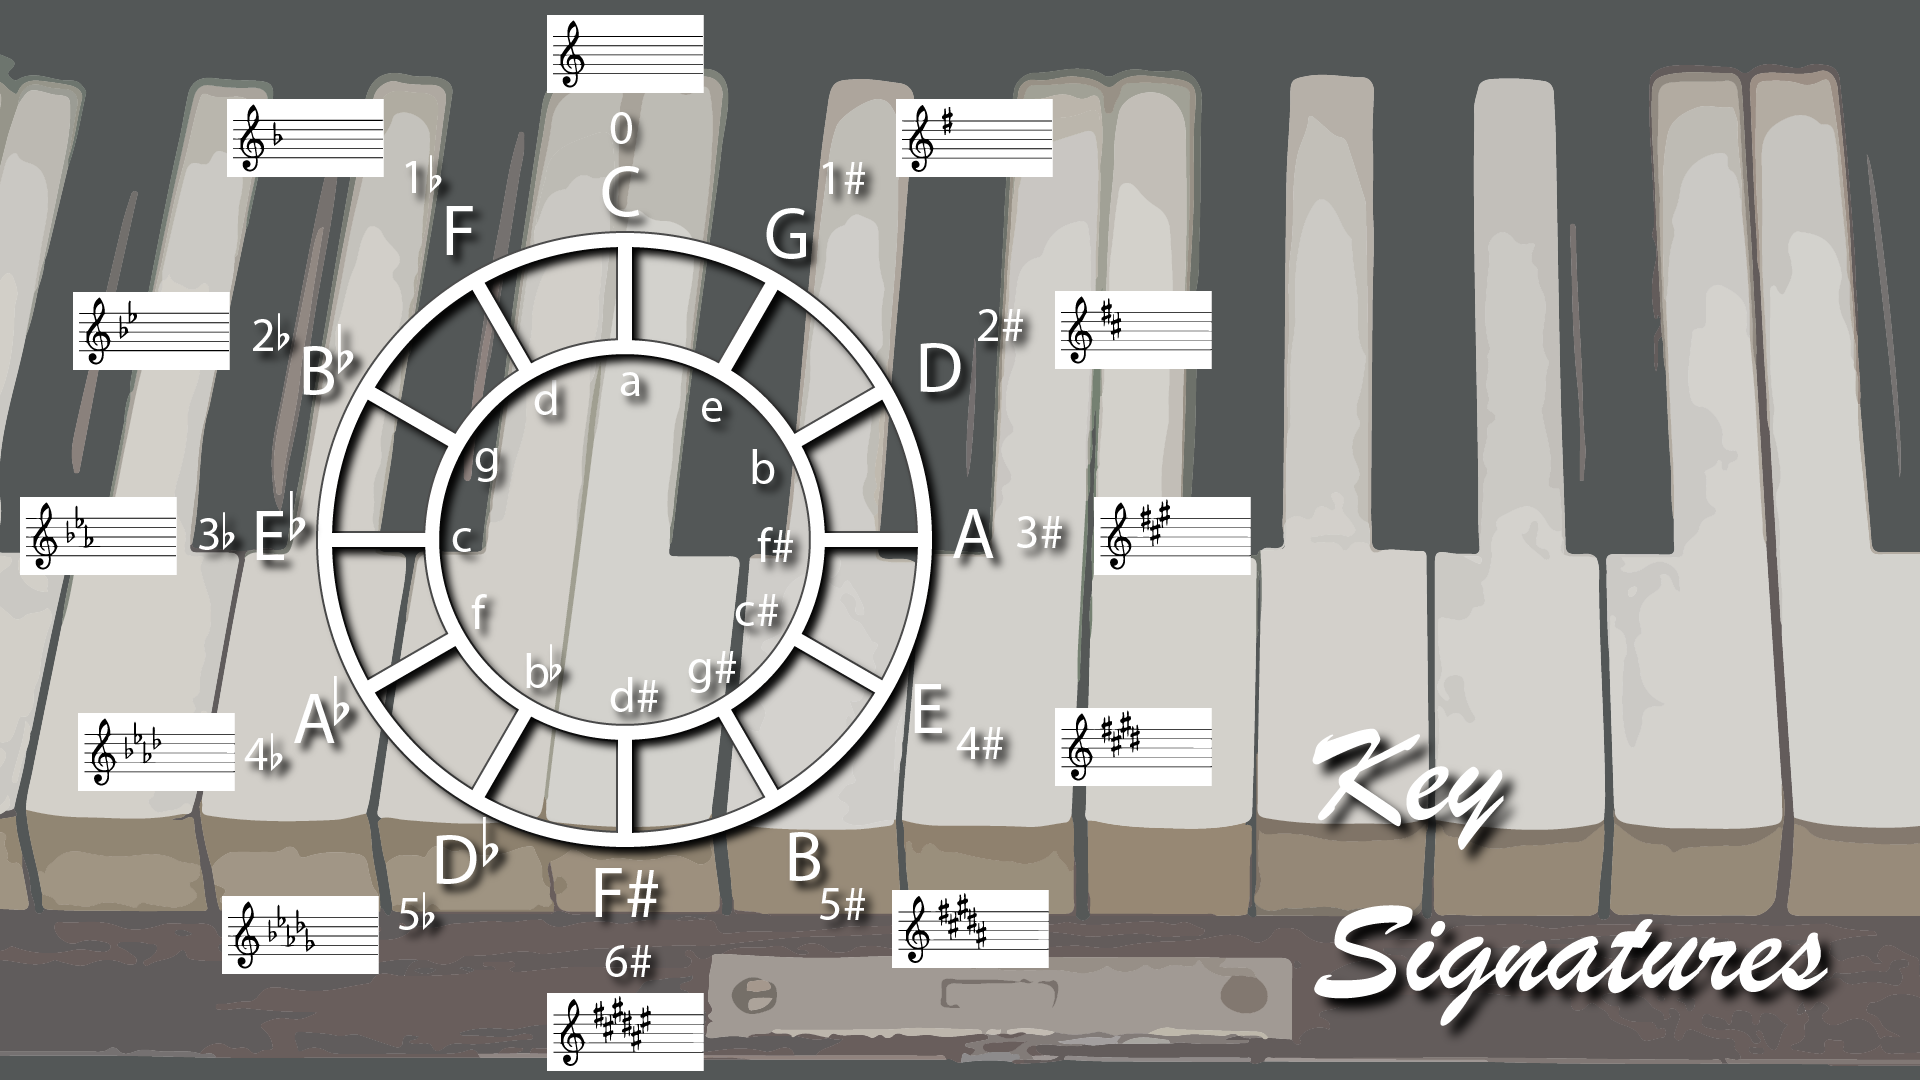 Key Signatures - The circle of fifths